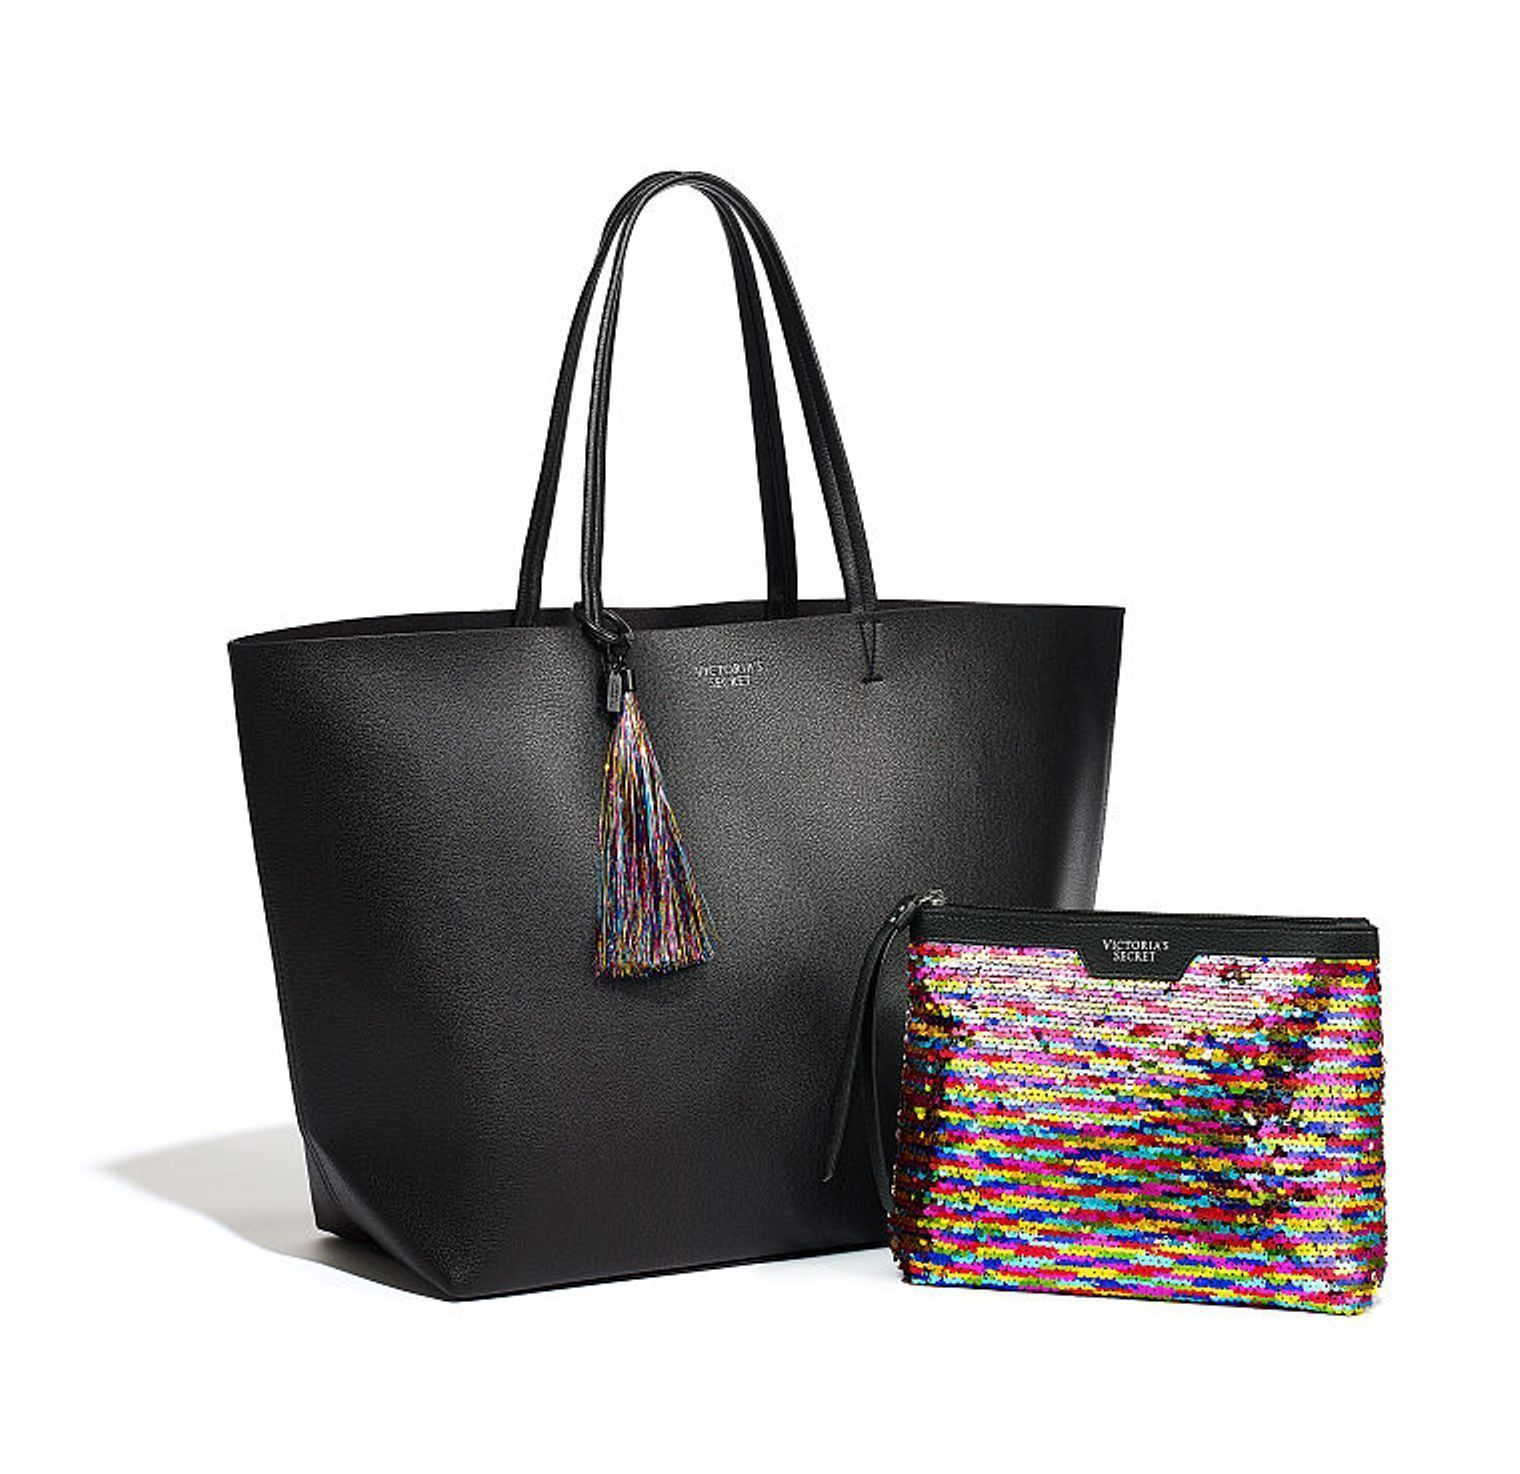 How To Make A Book Cover Out Of A Victoria S Secret Bag ~ Victorias secret limited edition black friday tote 2016 bag sequin